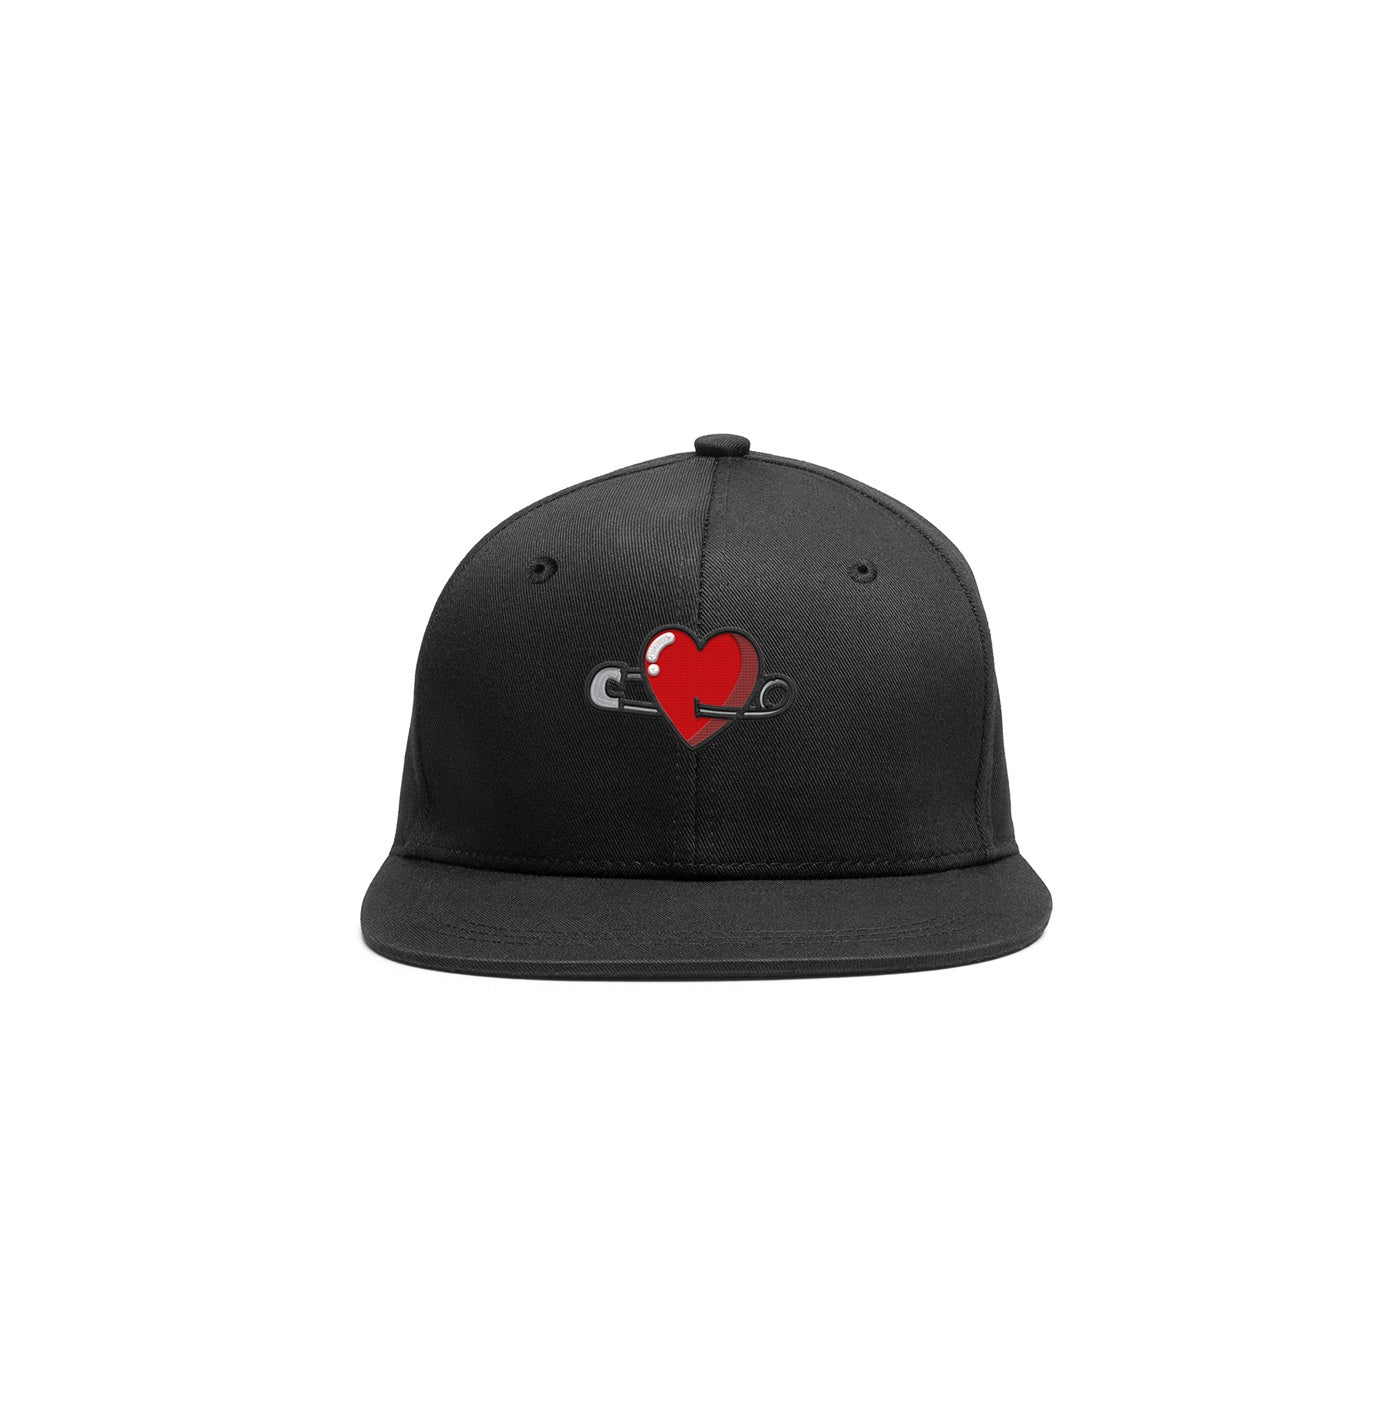 Embroidered My Heart Cap